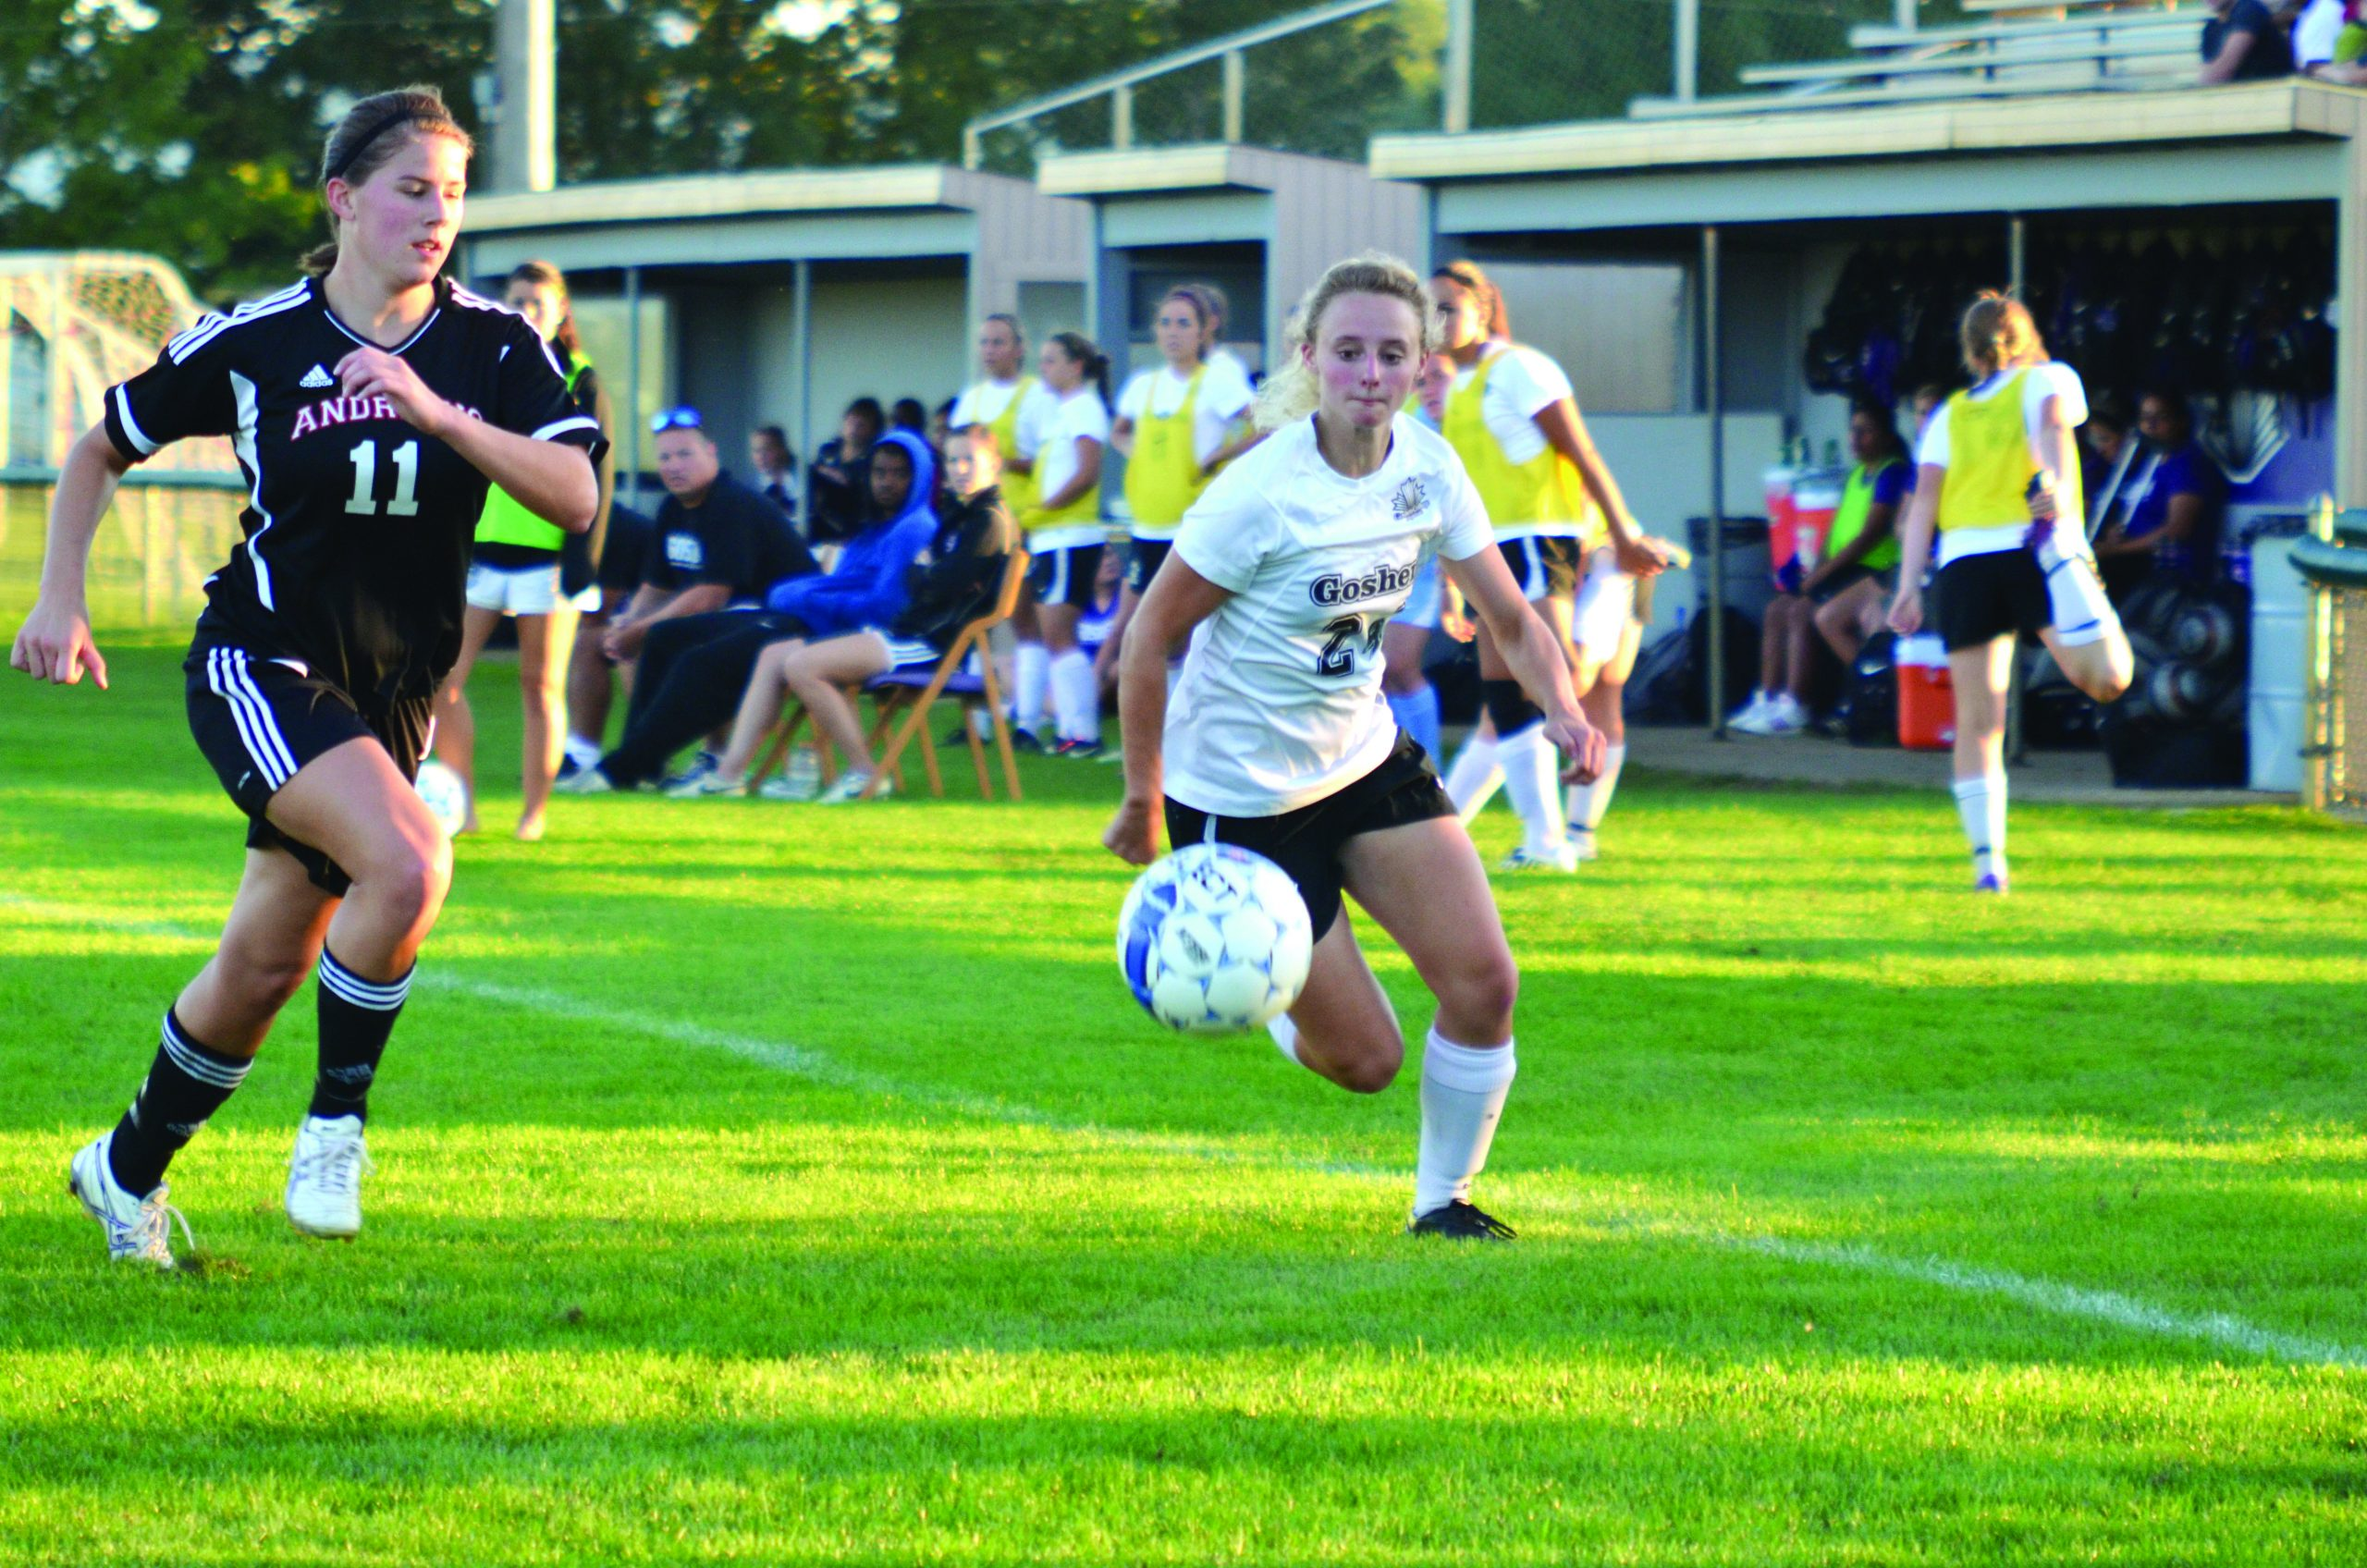 women's soccer player in action